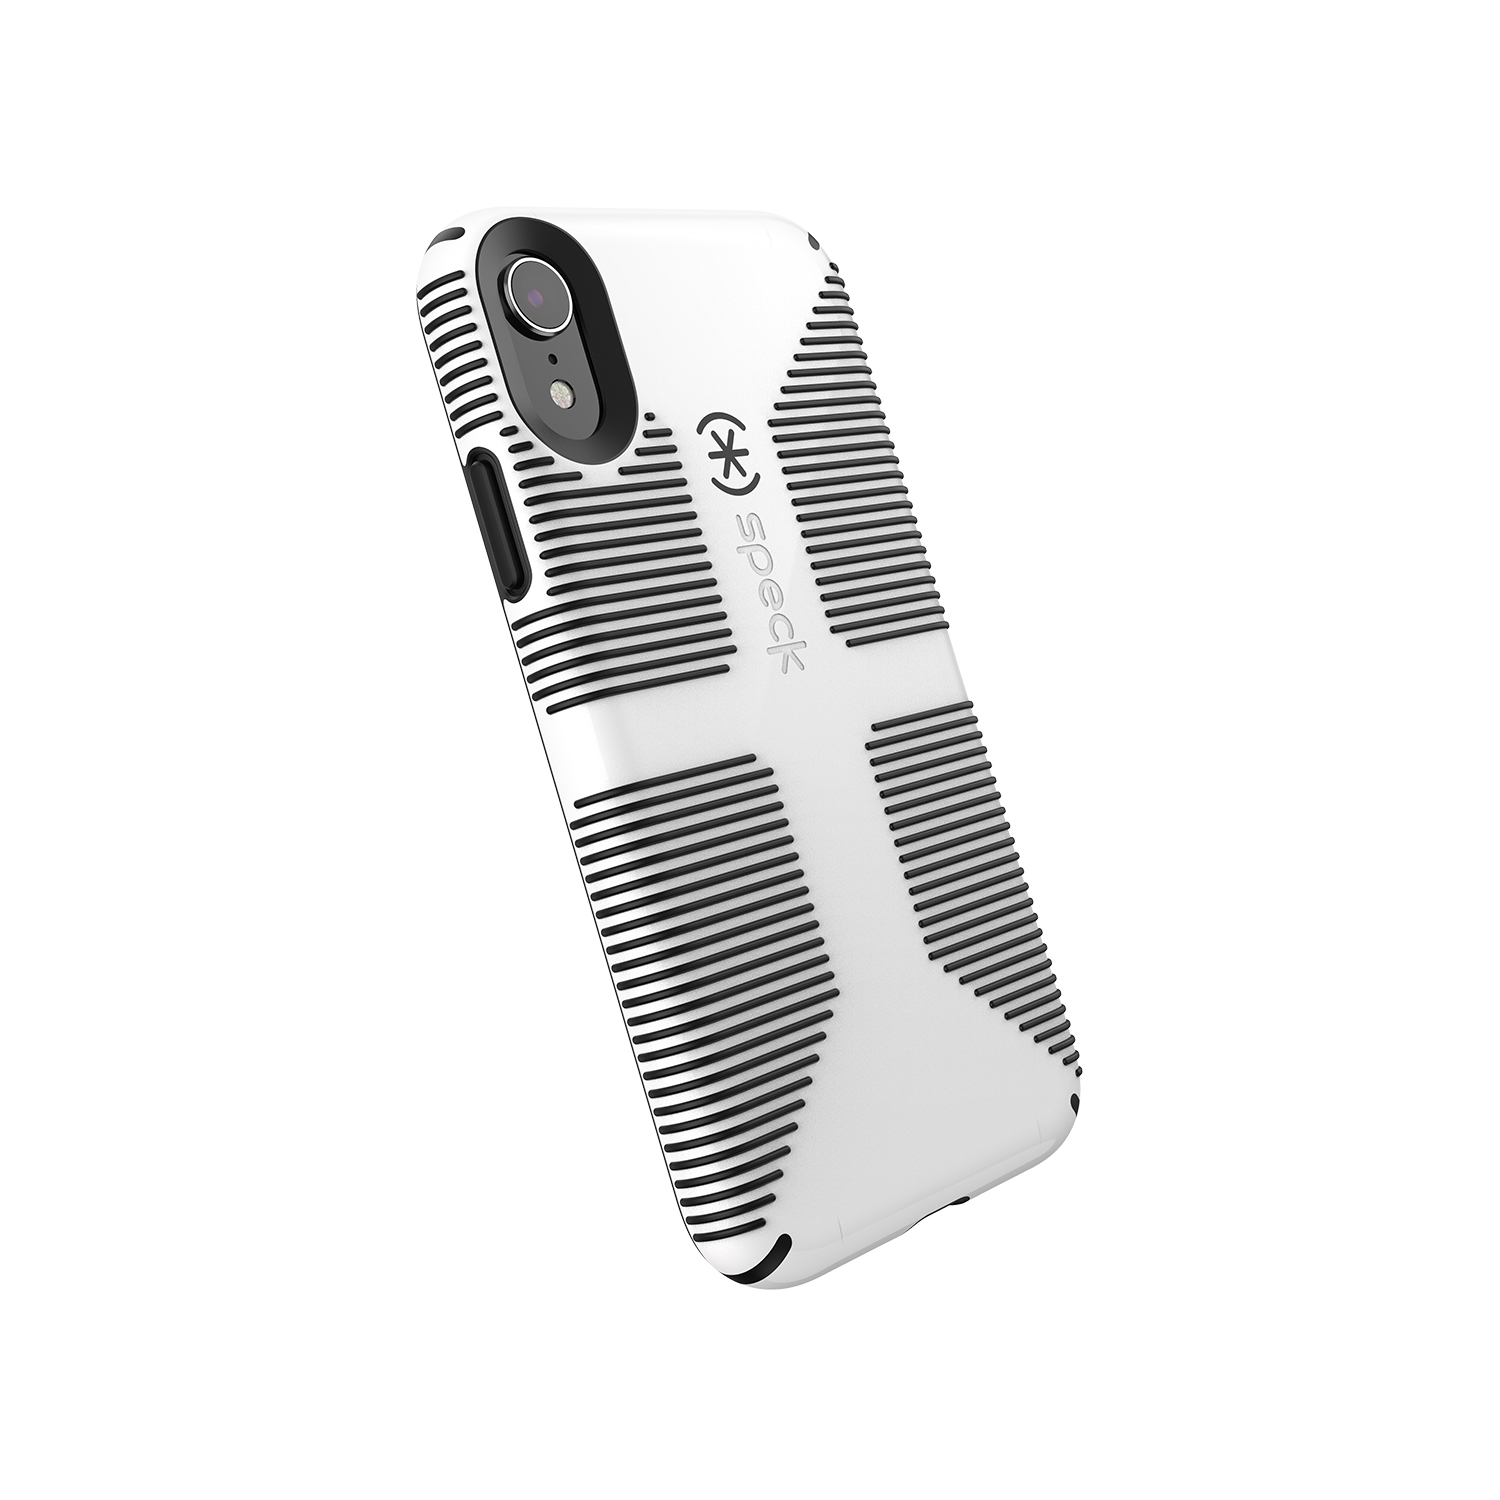 timeless design fa38c 7608f Speck Candyshell Grip Case for iPhone XR, White/Black